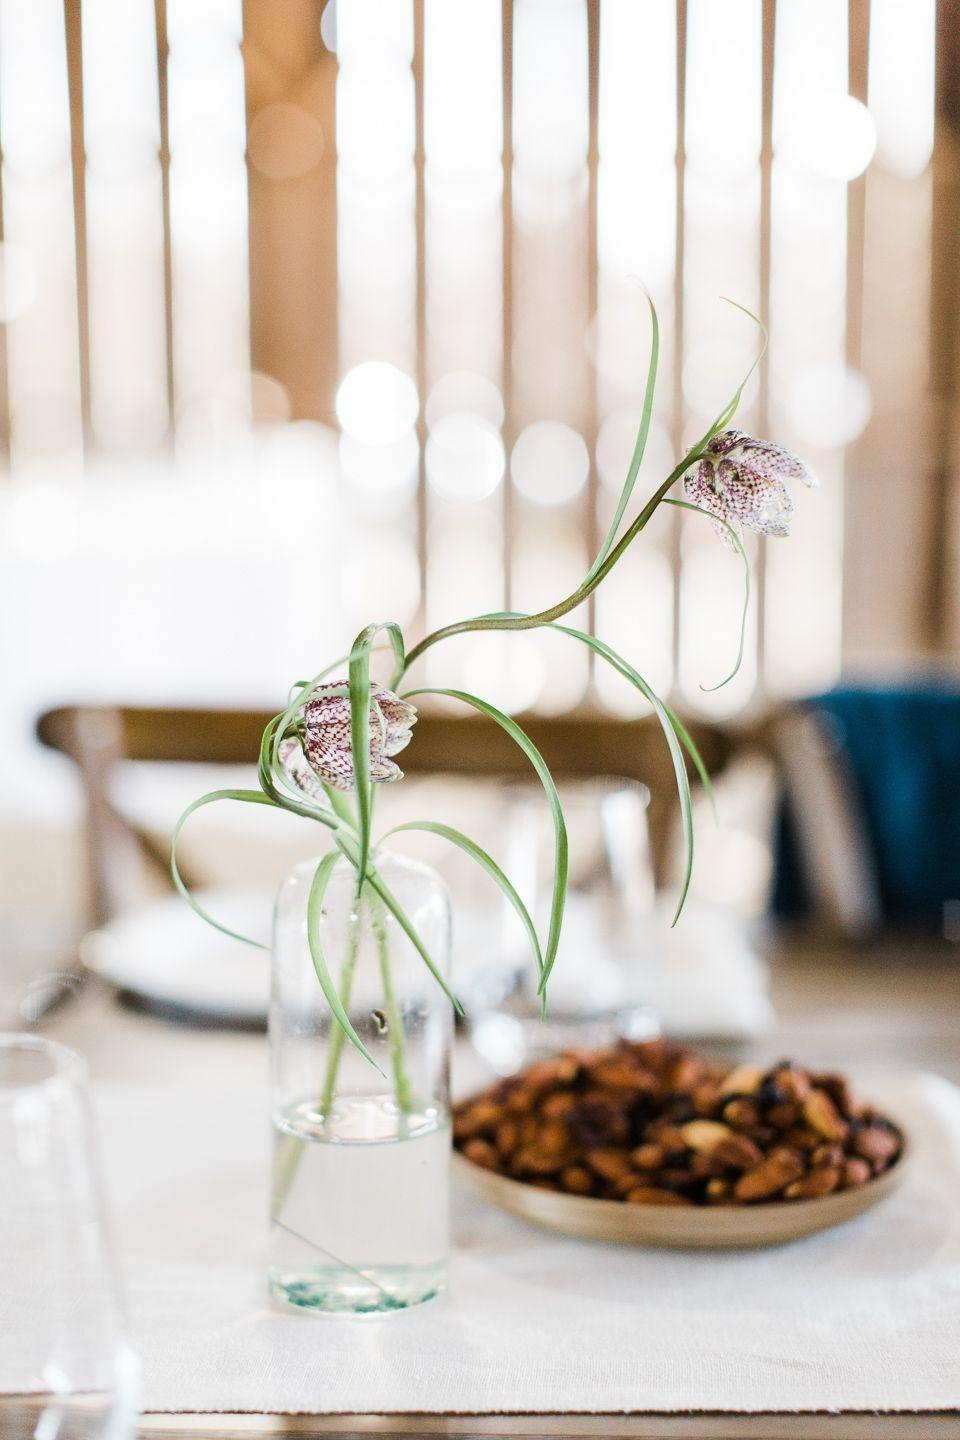 <p>For a clean, minimalist tablescape, opt for single stems in narrow, slim vases. Choose your favorite flowers to display for a personalized Easter brunch floral arrangement. </p>